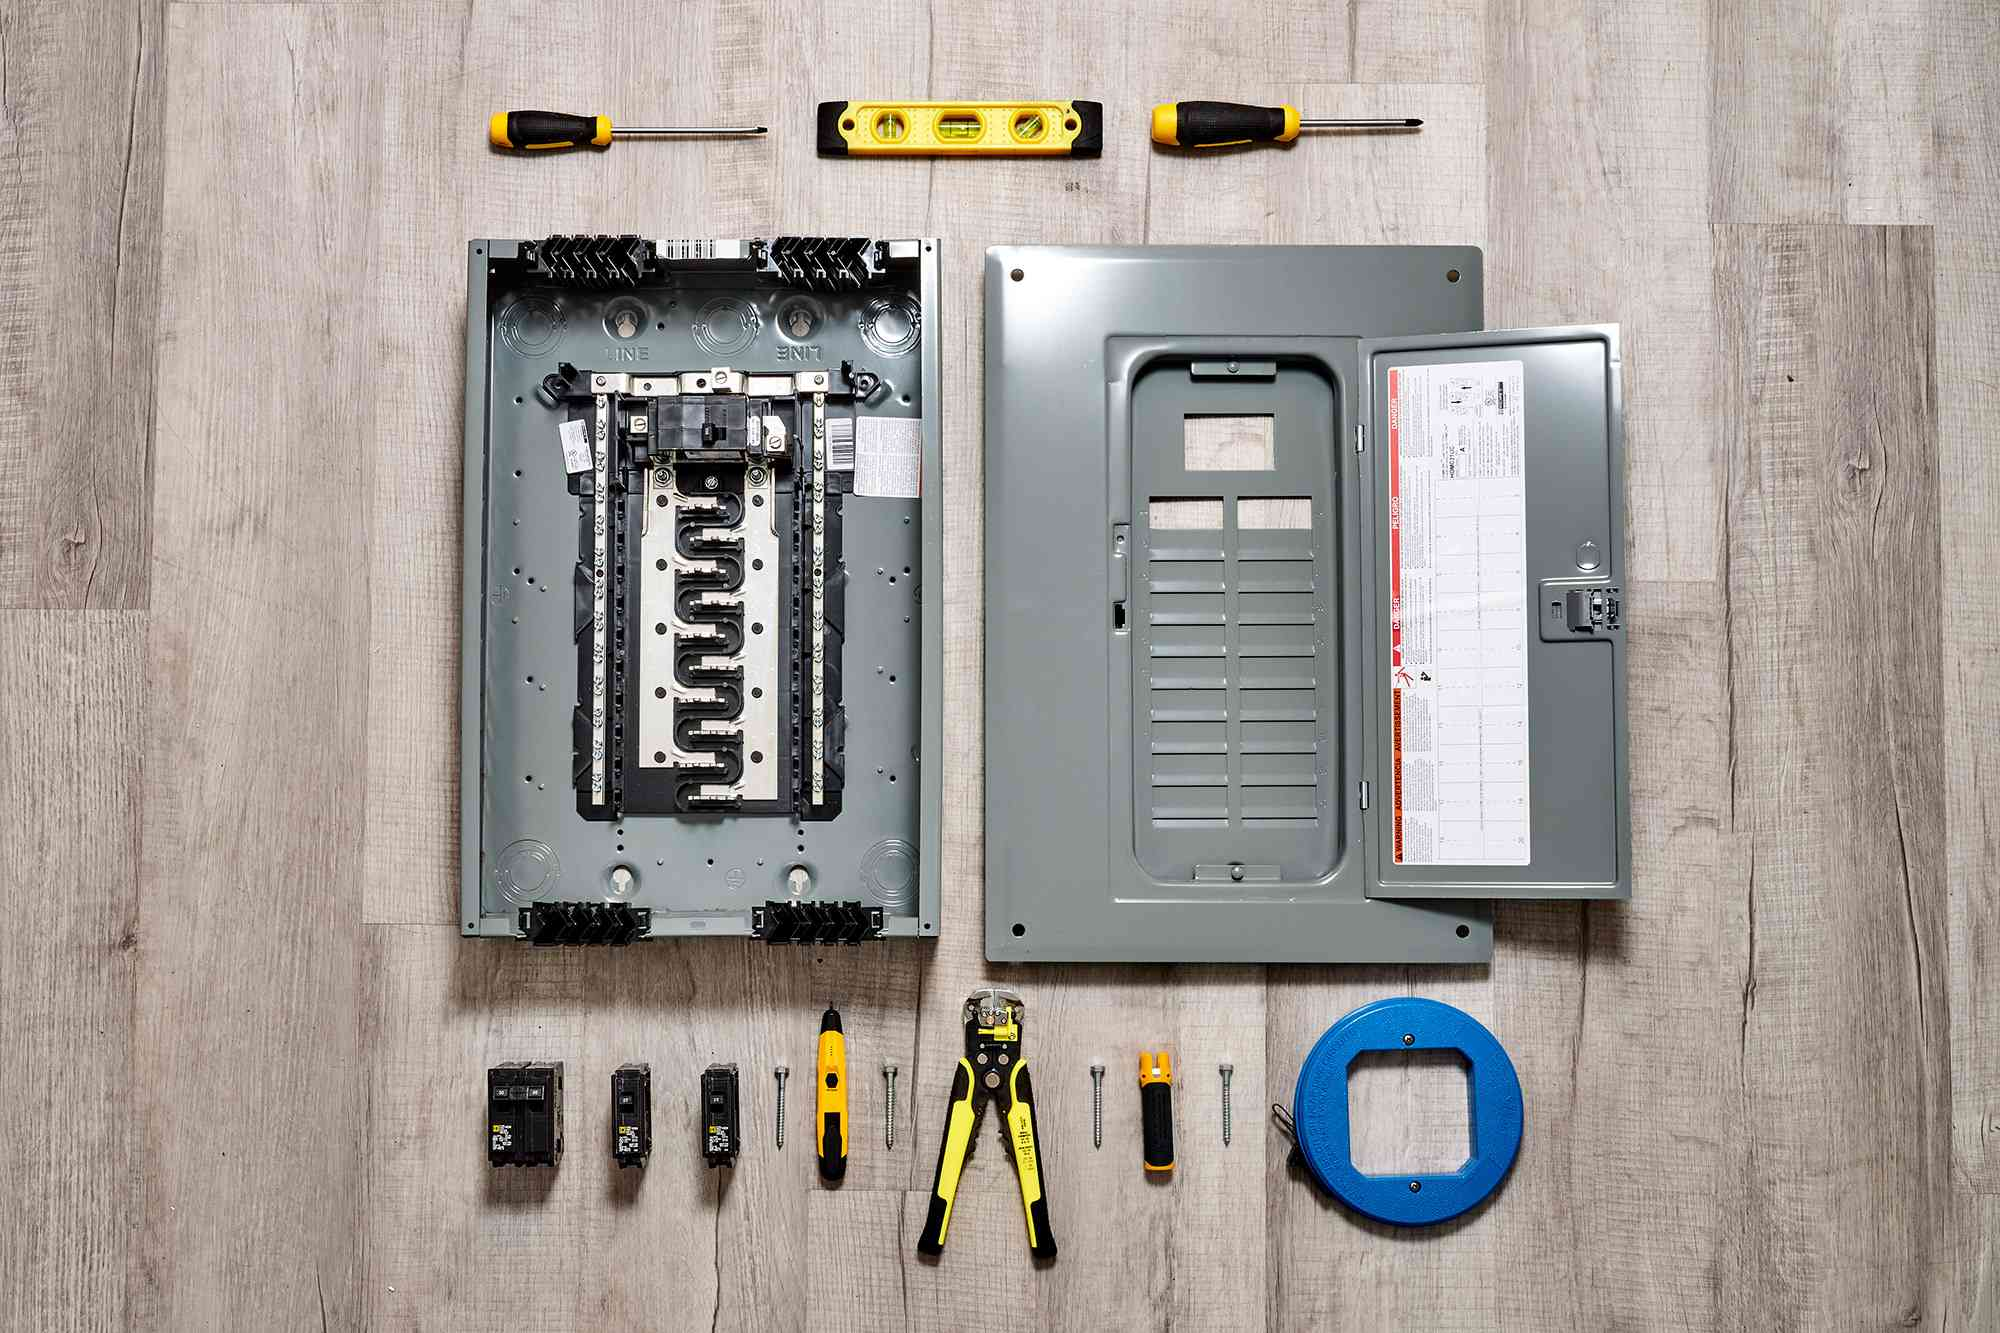 Materials and tools to wire an electrical circuit breaker panel